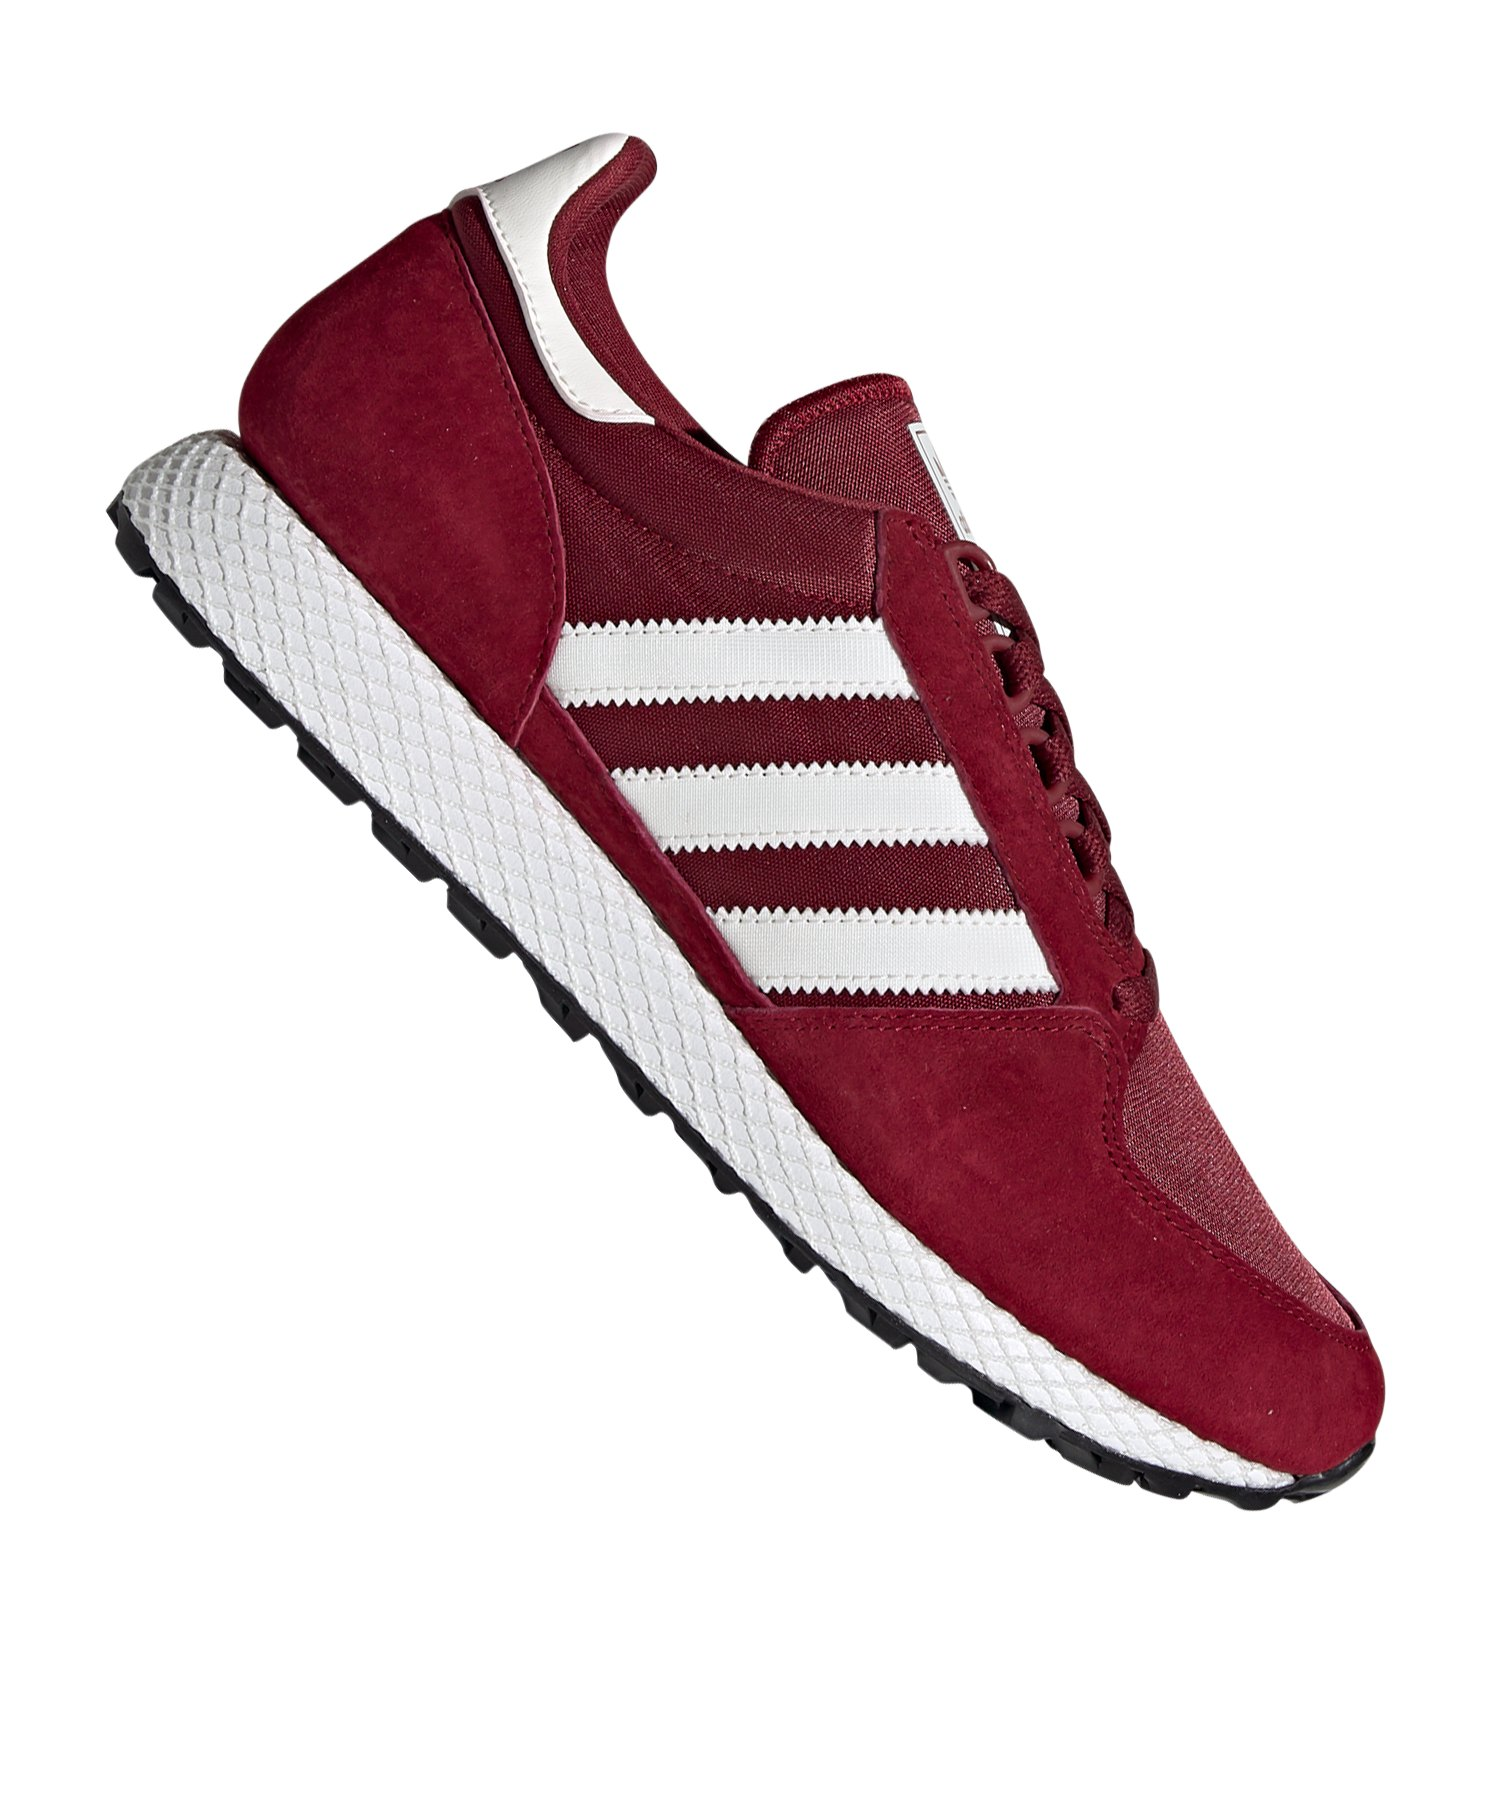 separation shoes 5248a d6351 adidas Originals Forest Grove Sneaker Rot Weiss - rot